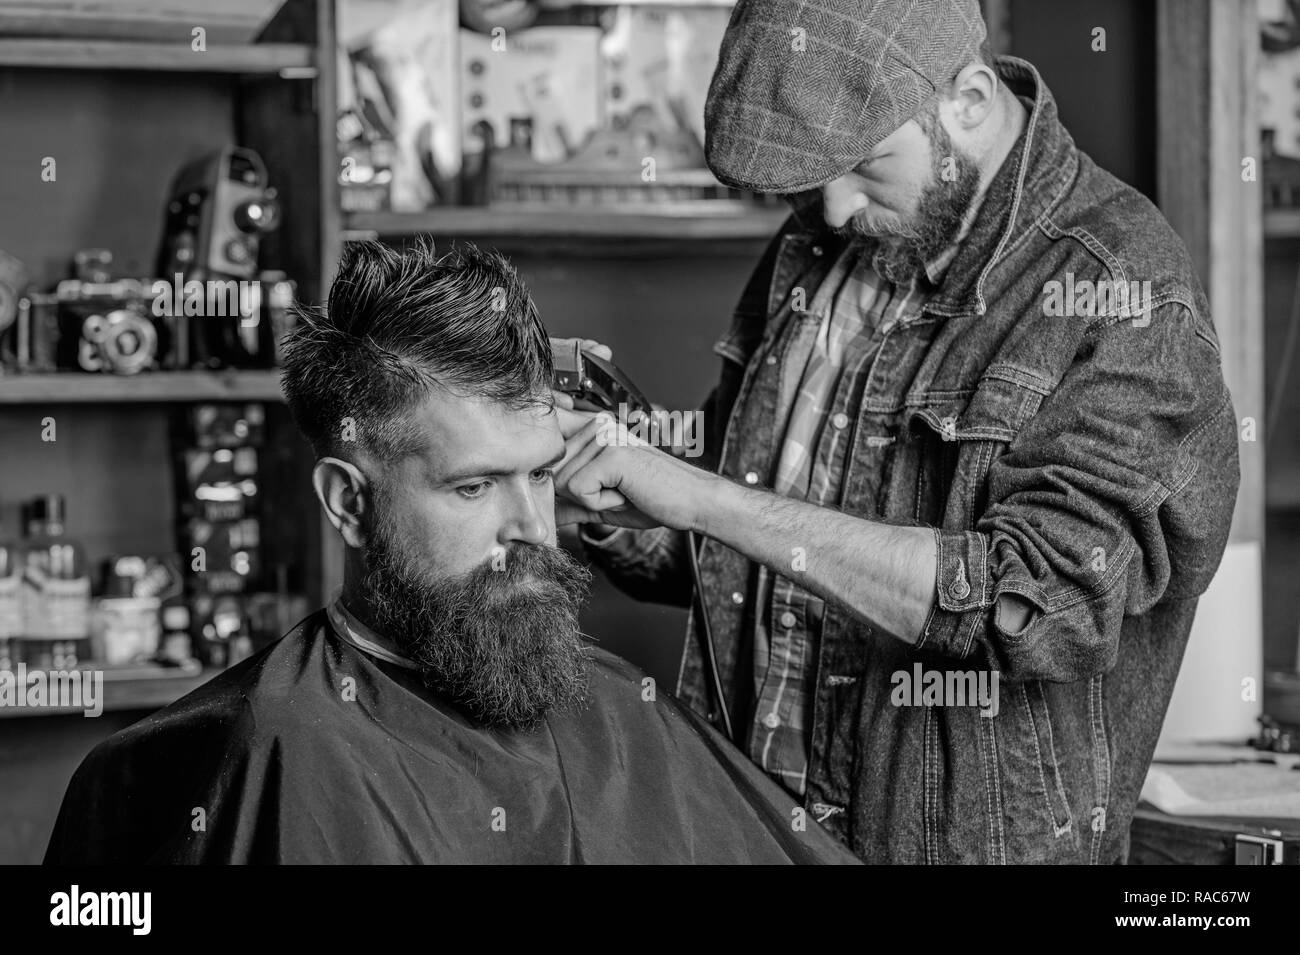 Hipster lifestyle concept. Hipster client getting haircut. Barber with hair clipper work on hairstyle for bearded hipster, barbershop background. Barber with clipper trimming hair on temple of client. - Stock Image